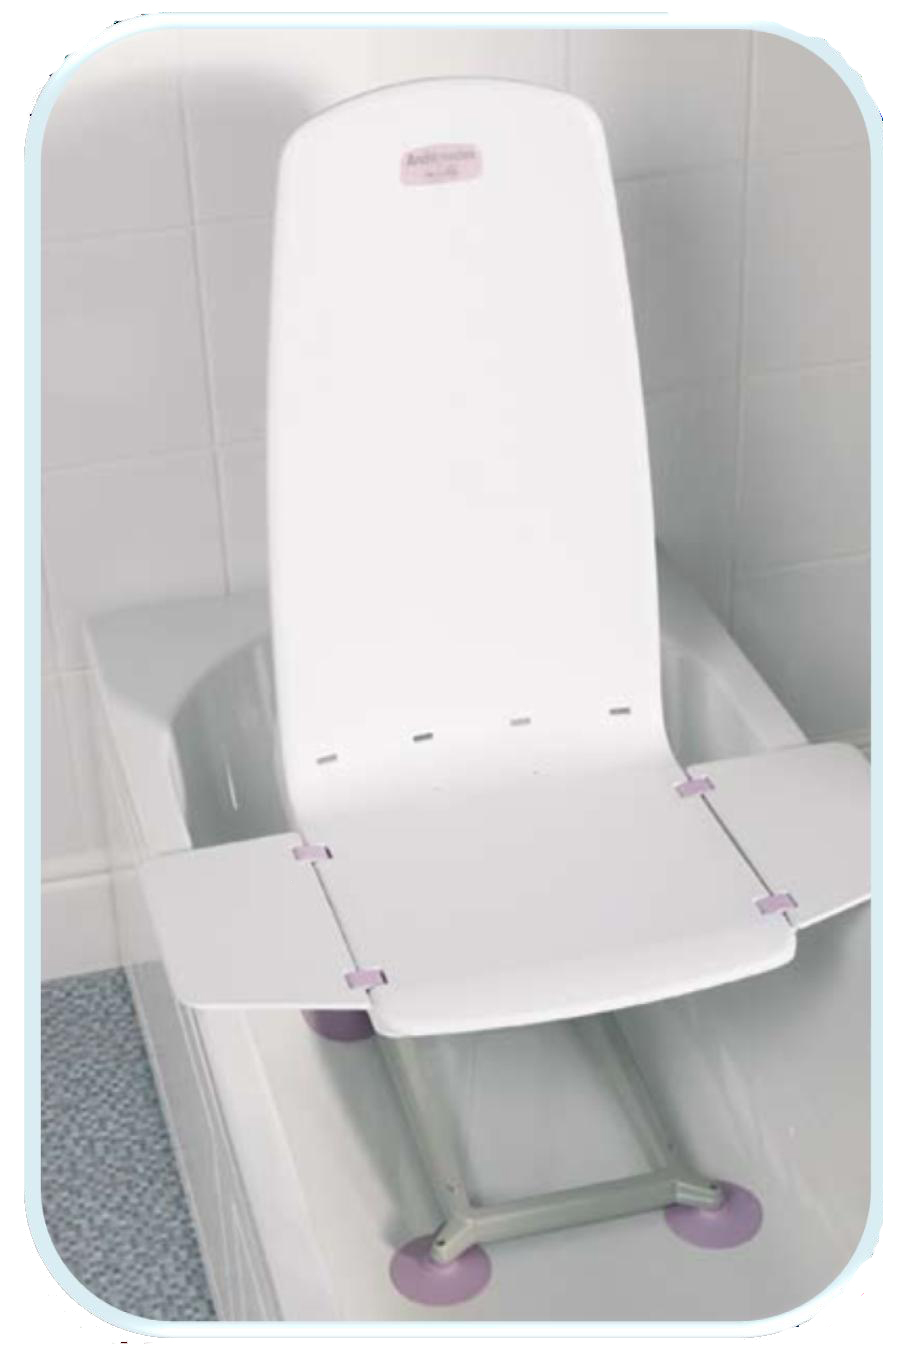 hydraulic bath lifts, ameriglide bath lift, bath lift video, bath lift video